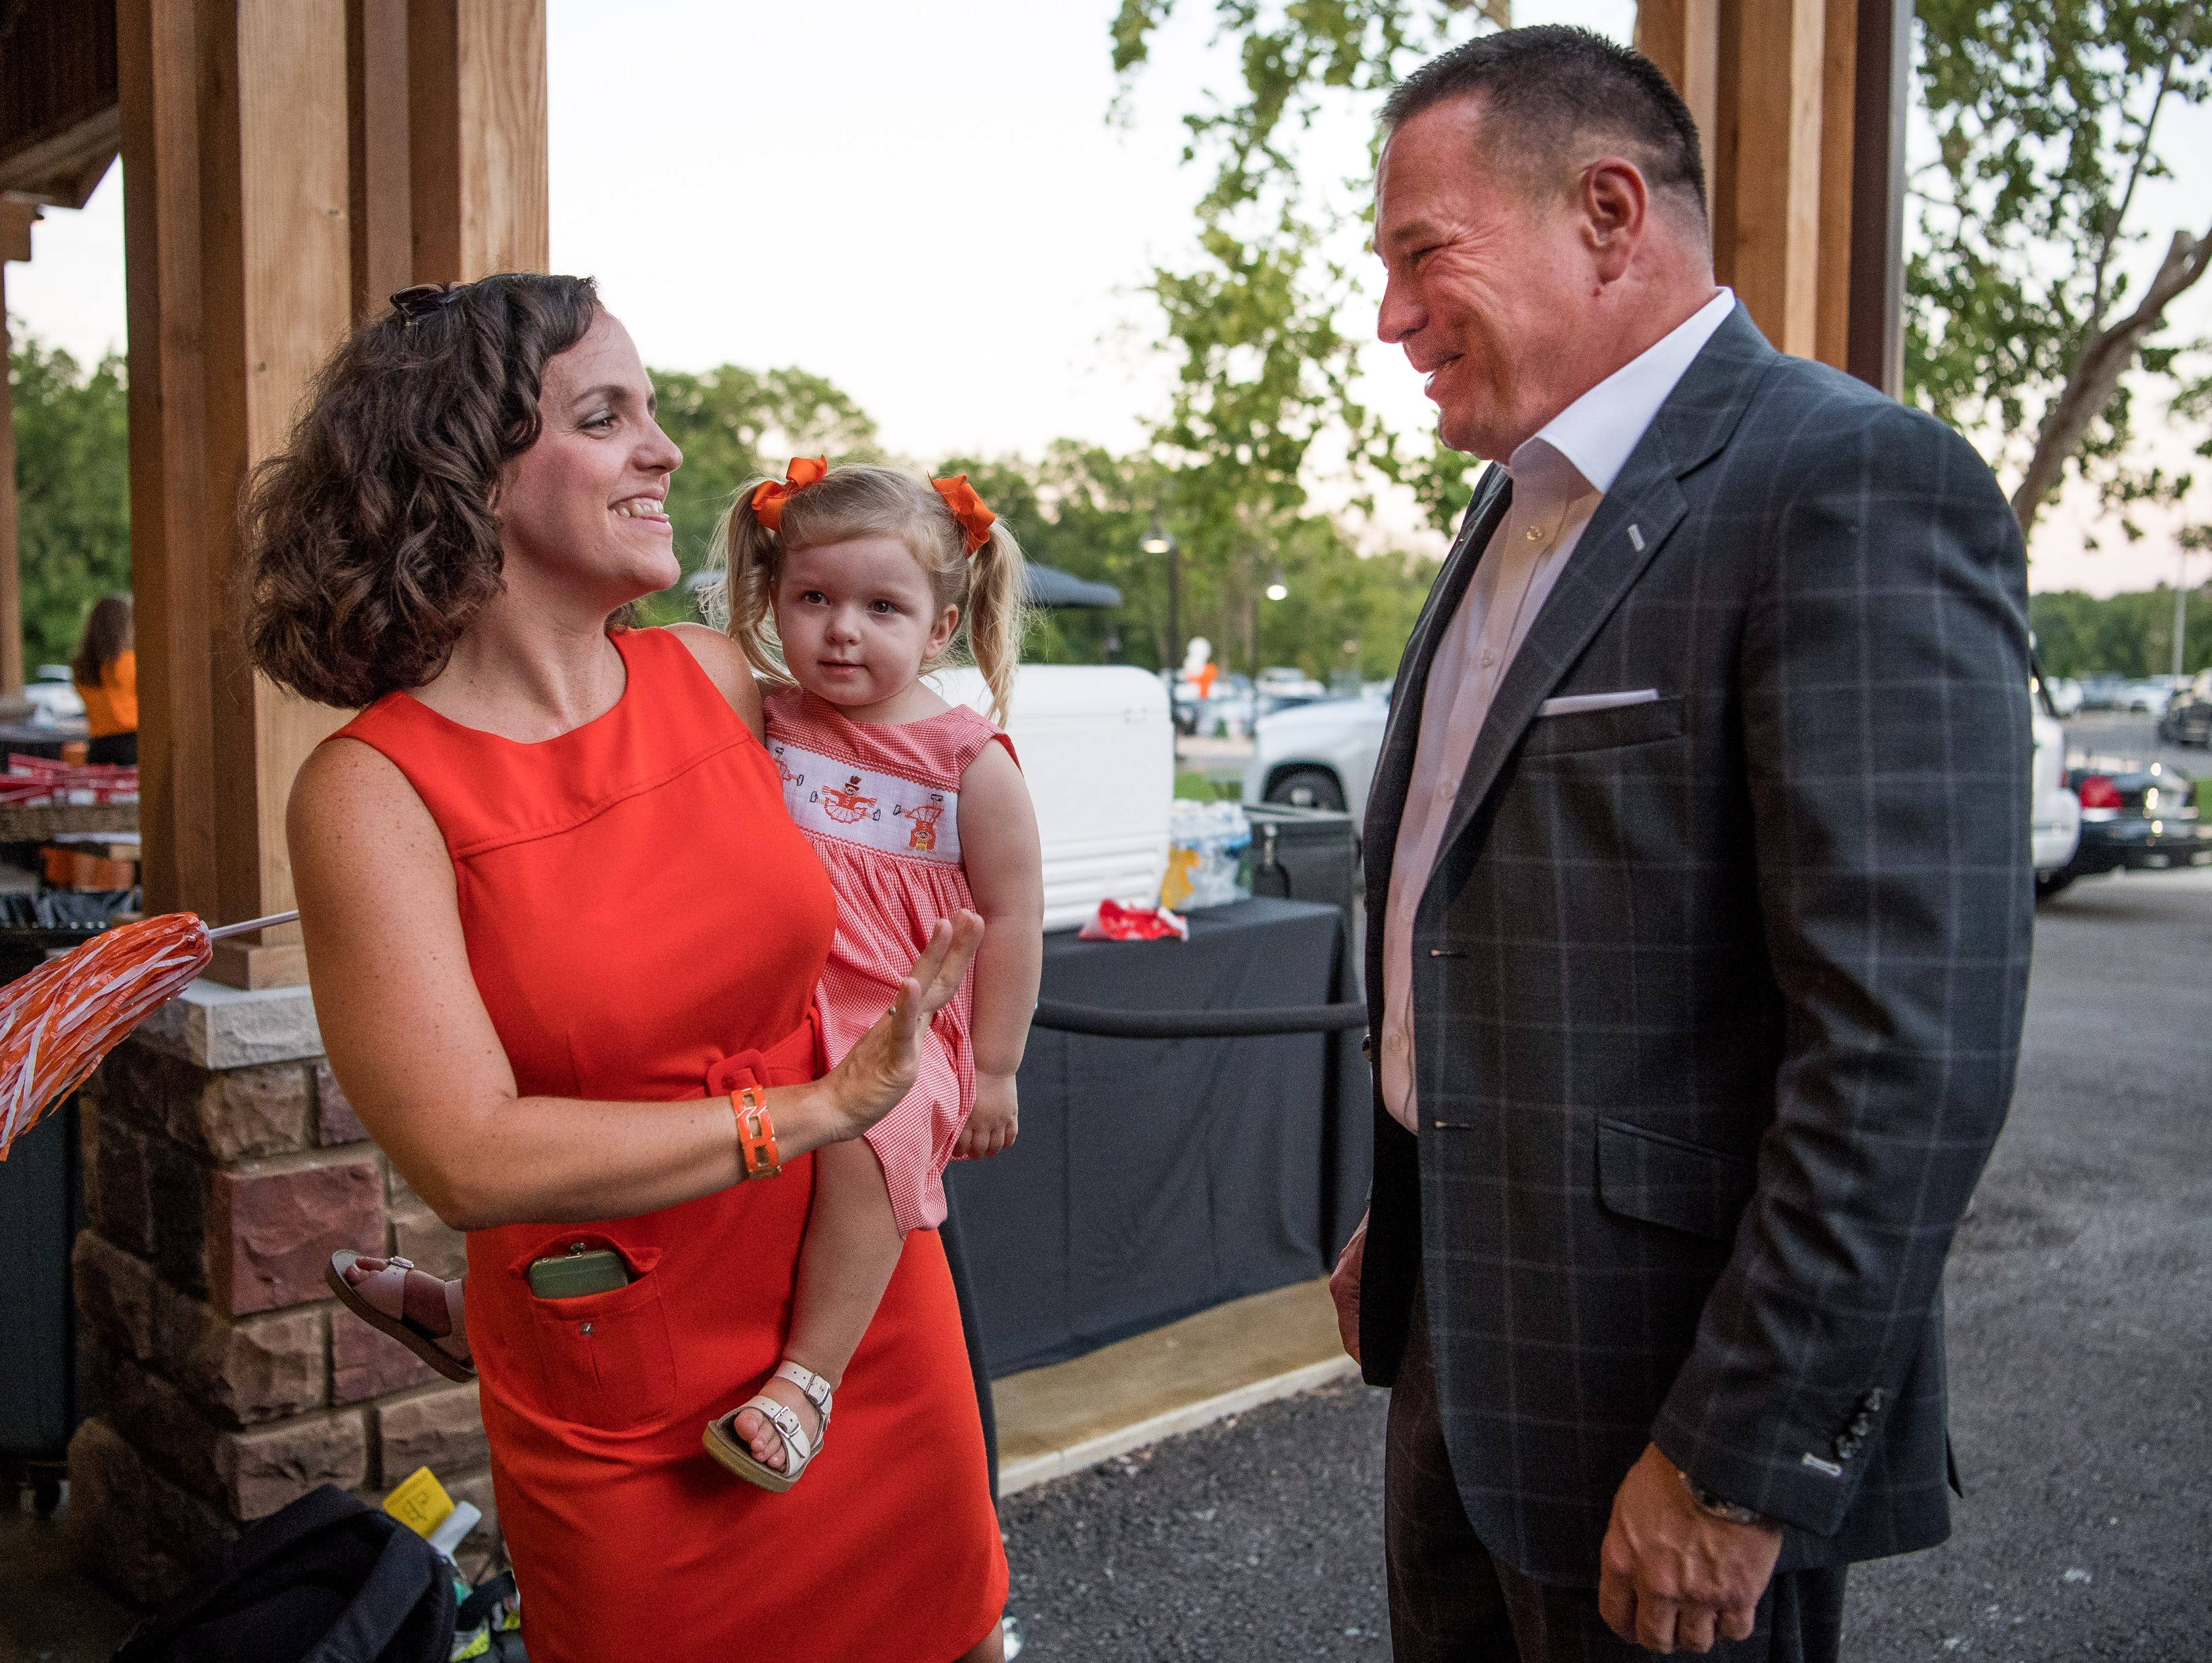 Butch Jones, University of Tennessee football coach, greets Lisa Debusk and her 2-year-old daughter Kate during a Big Orange Caravan event at The Barn at Sycamore Farms in Arrington, Tenn., Monday, July 10, 2017.